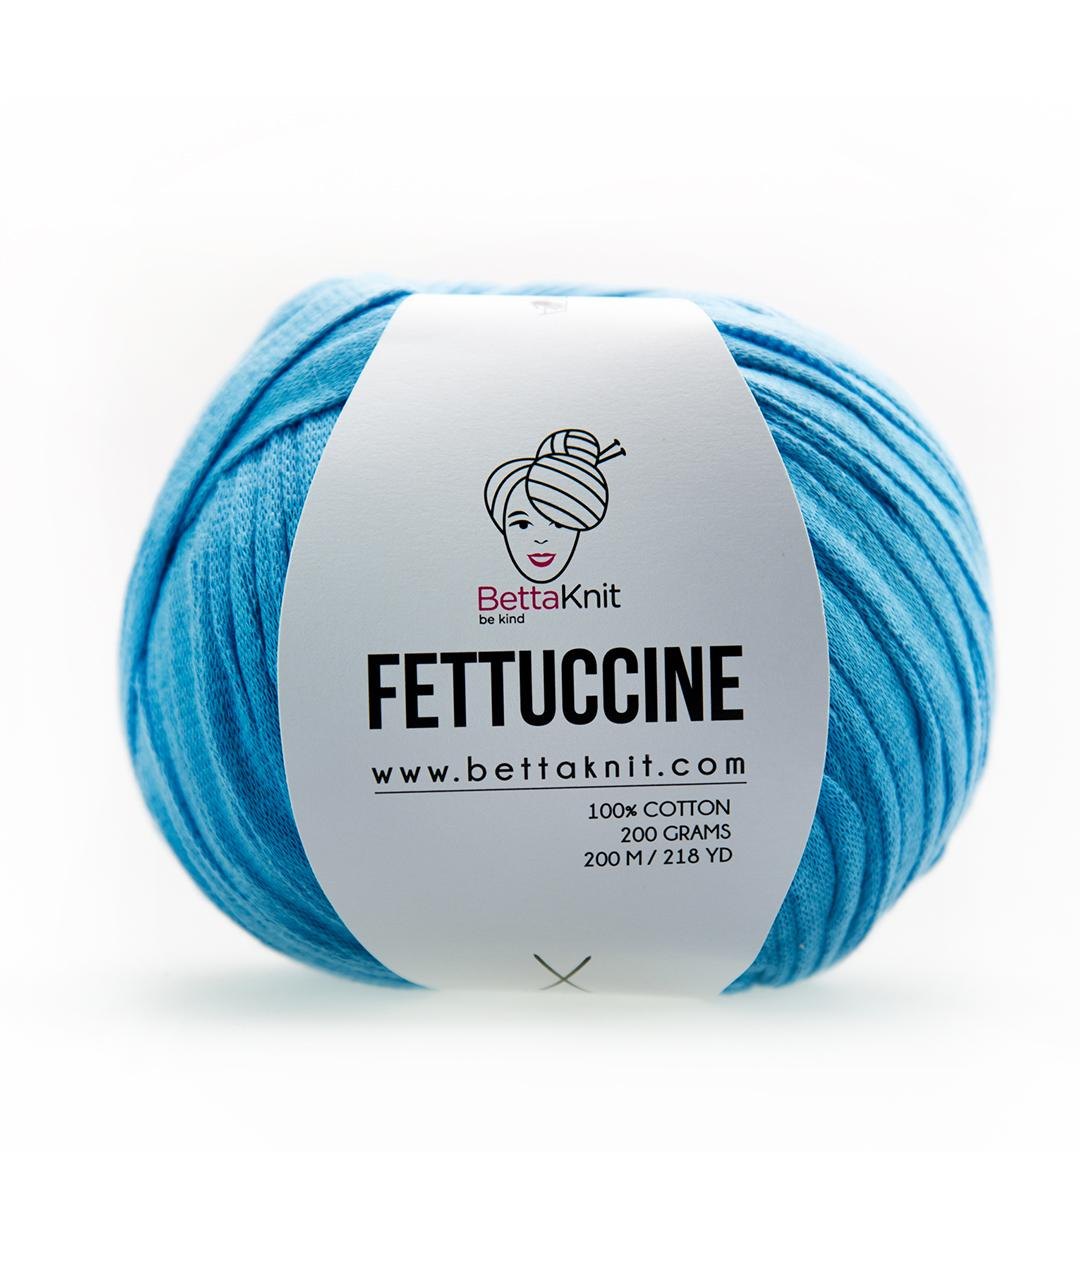 Home - CottonCotton - Yarns - Fettuccine - 1